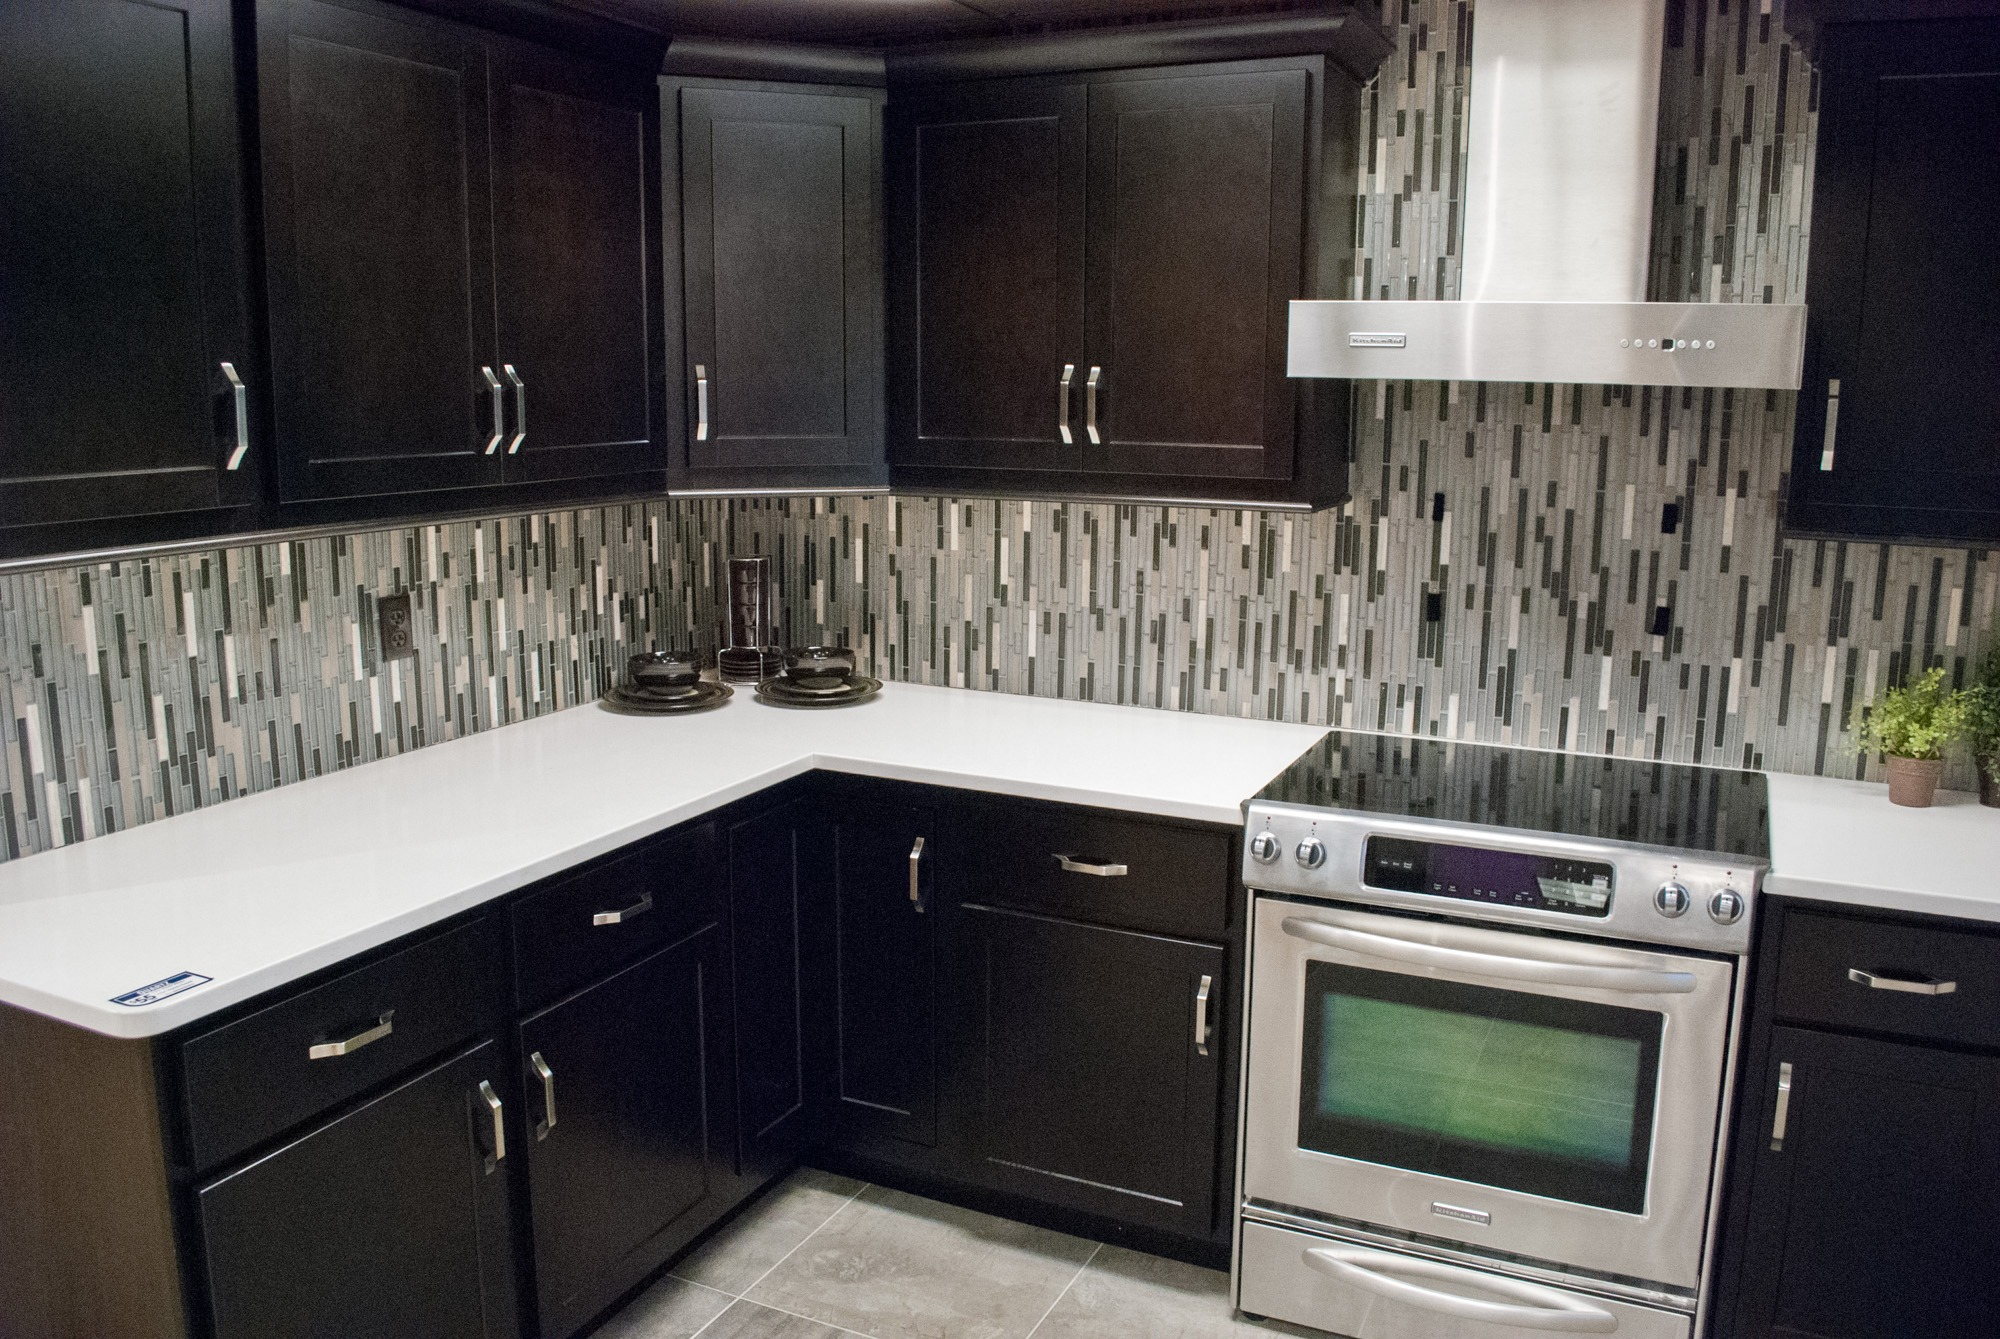 in stock georgetown maple onyx cabinetry schillings rh schillings com Onyx Kitchen Cabinets Backlit Onyx Wall